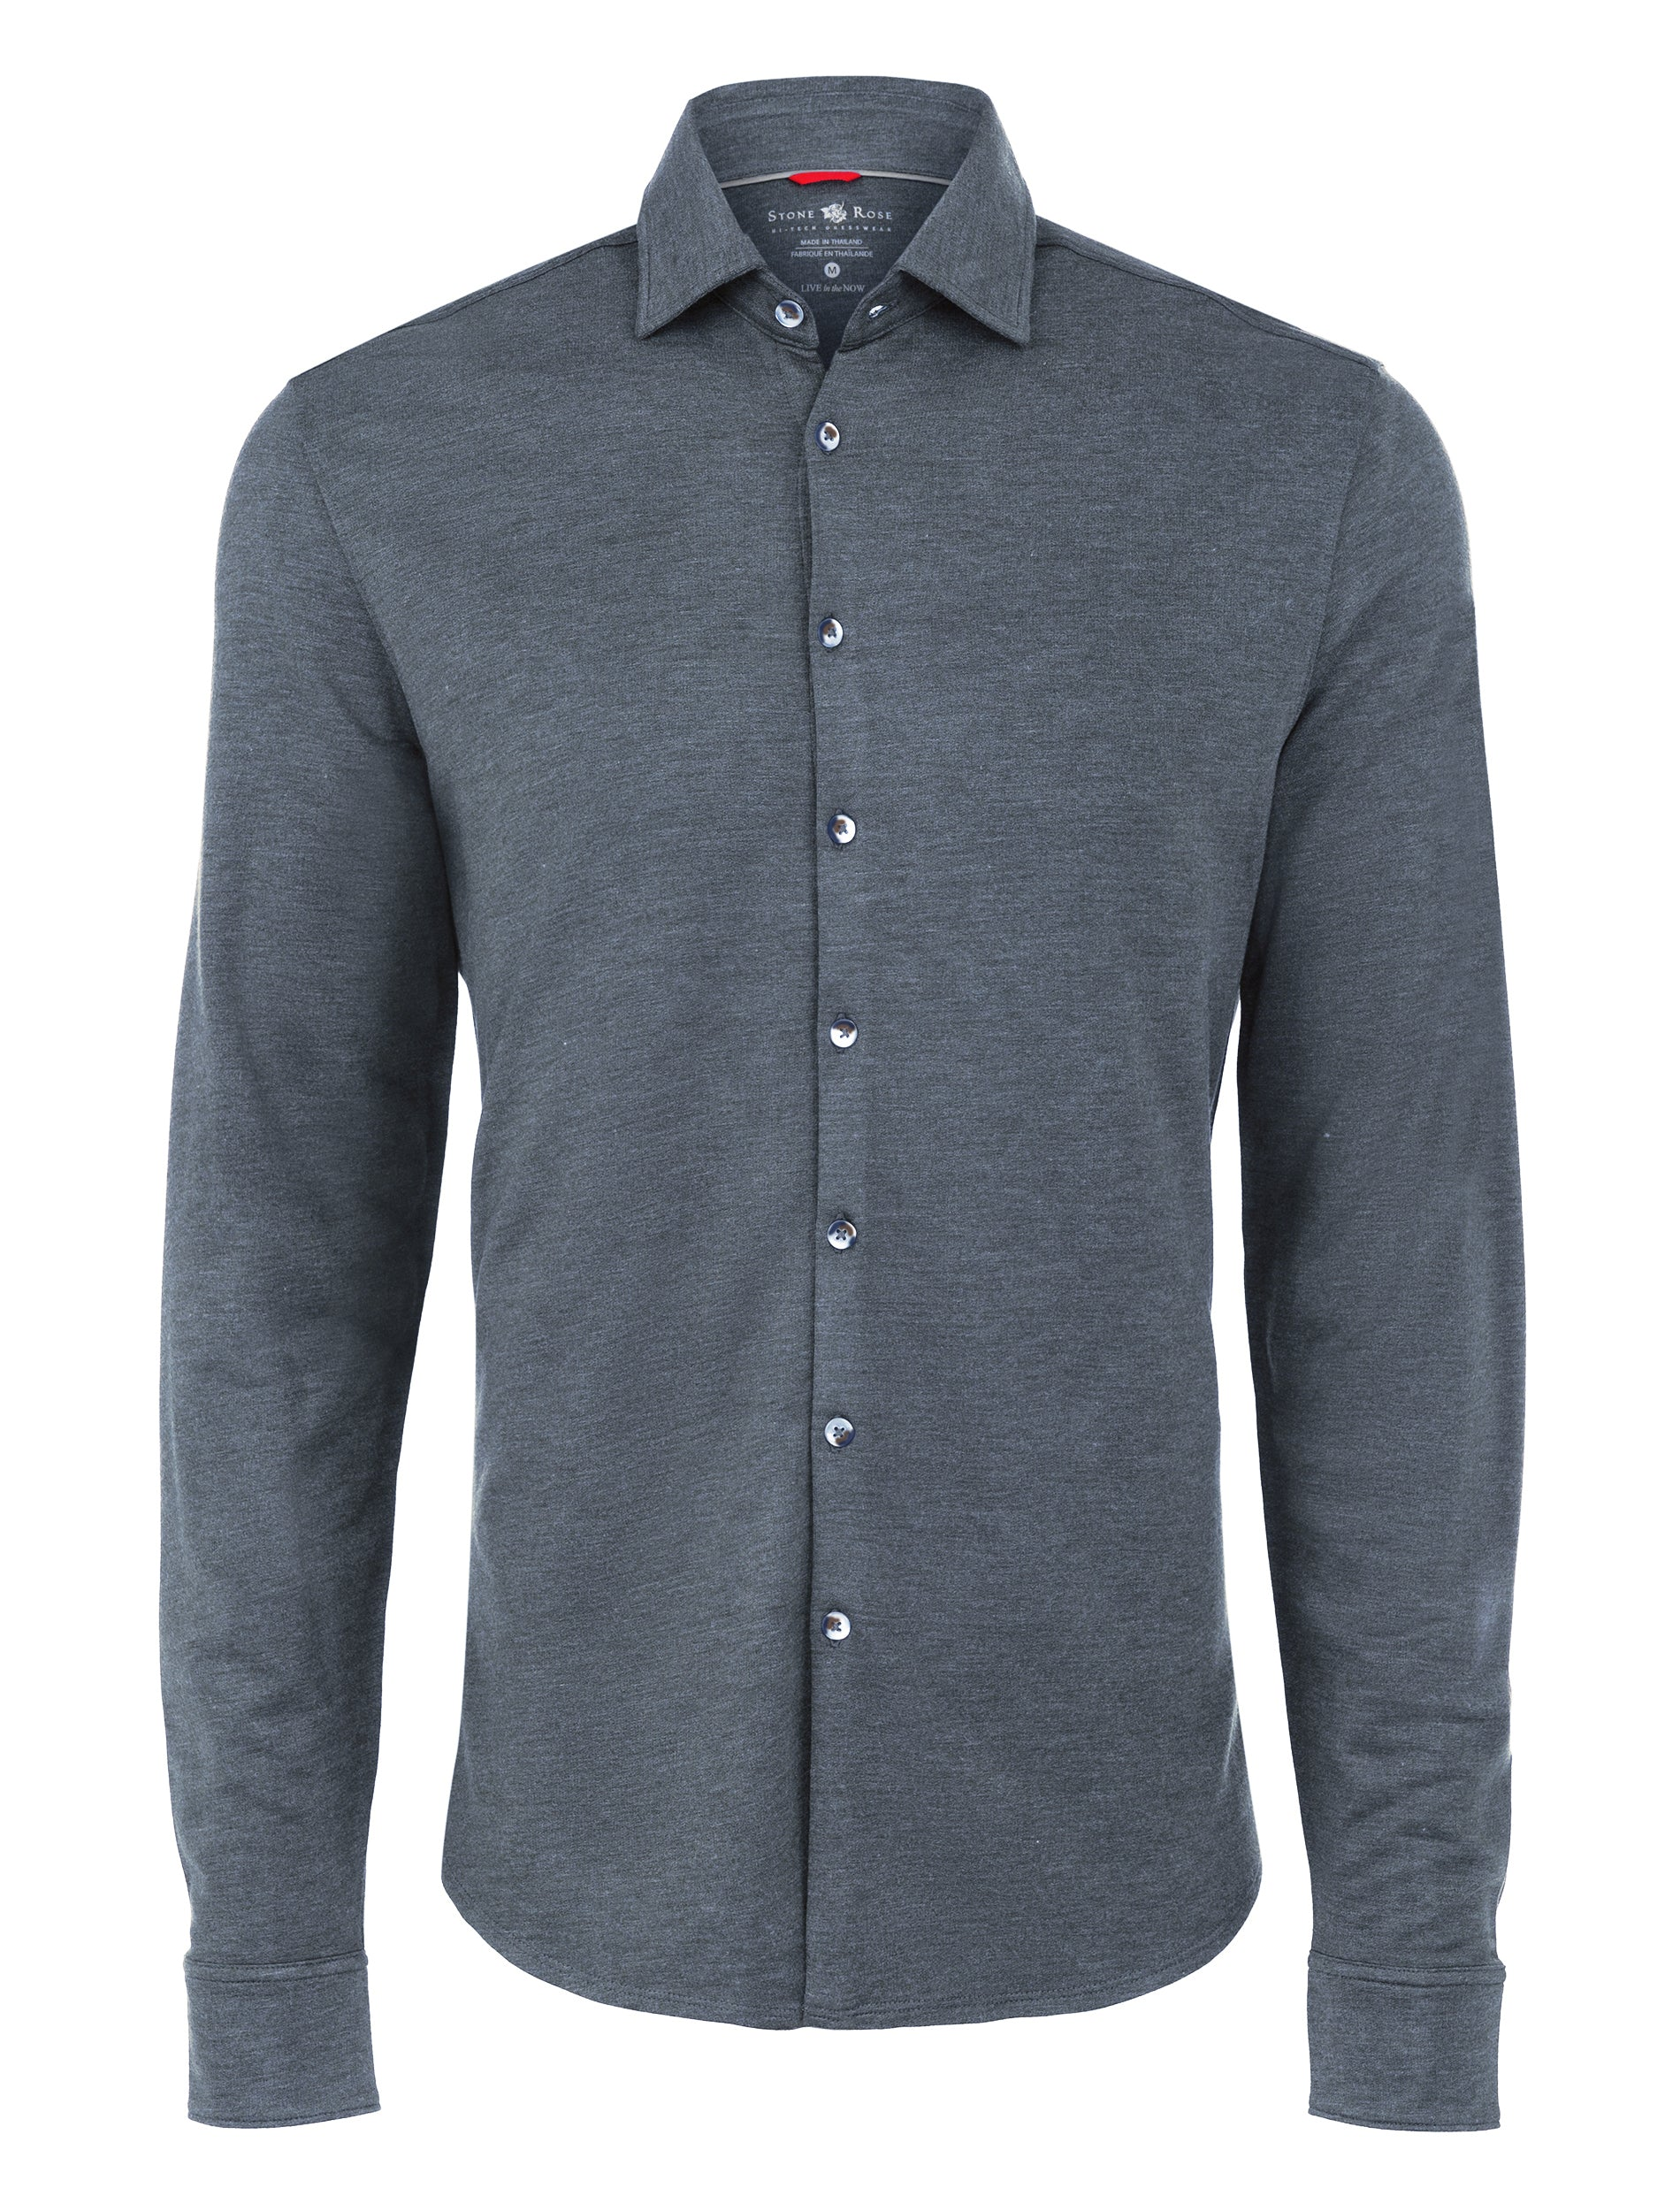 Navy Brushed Heather Knit Performance Long Sleeve Shirt-Stone Rose